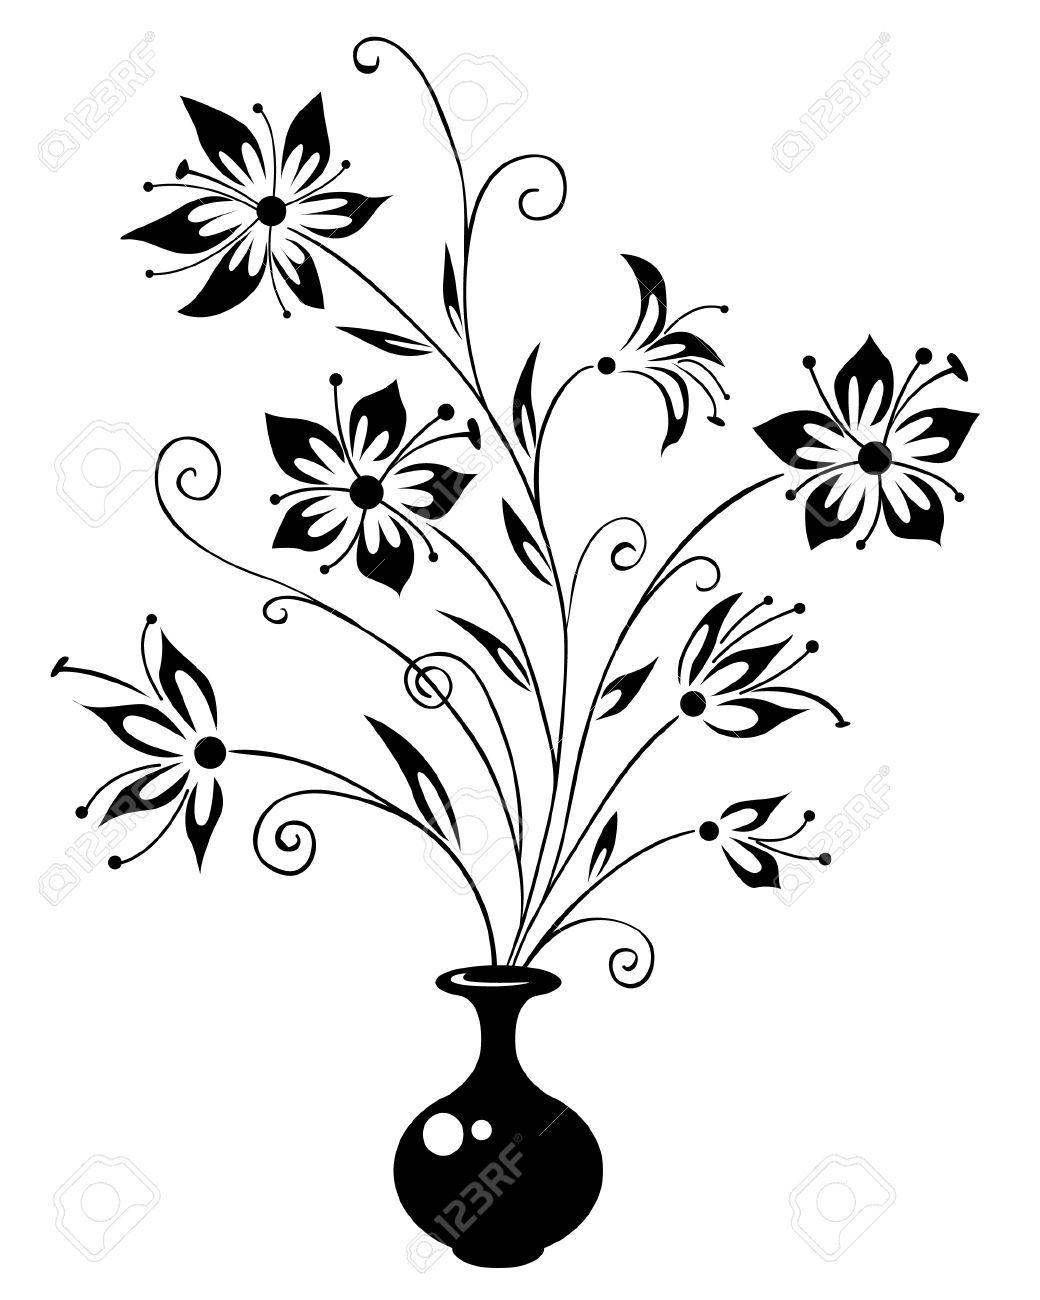 1040x1300 Incoming H4gtpencil Art Images Flowers,flower Vase Drawing